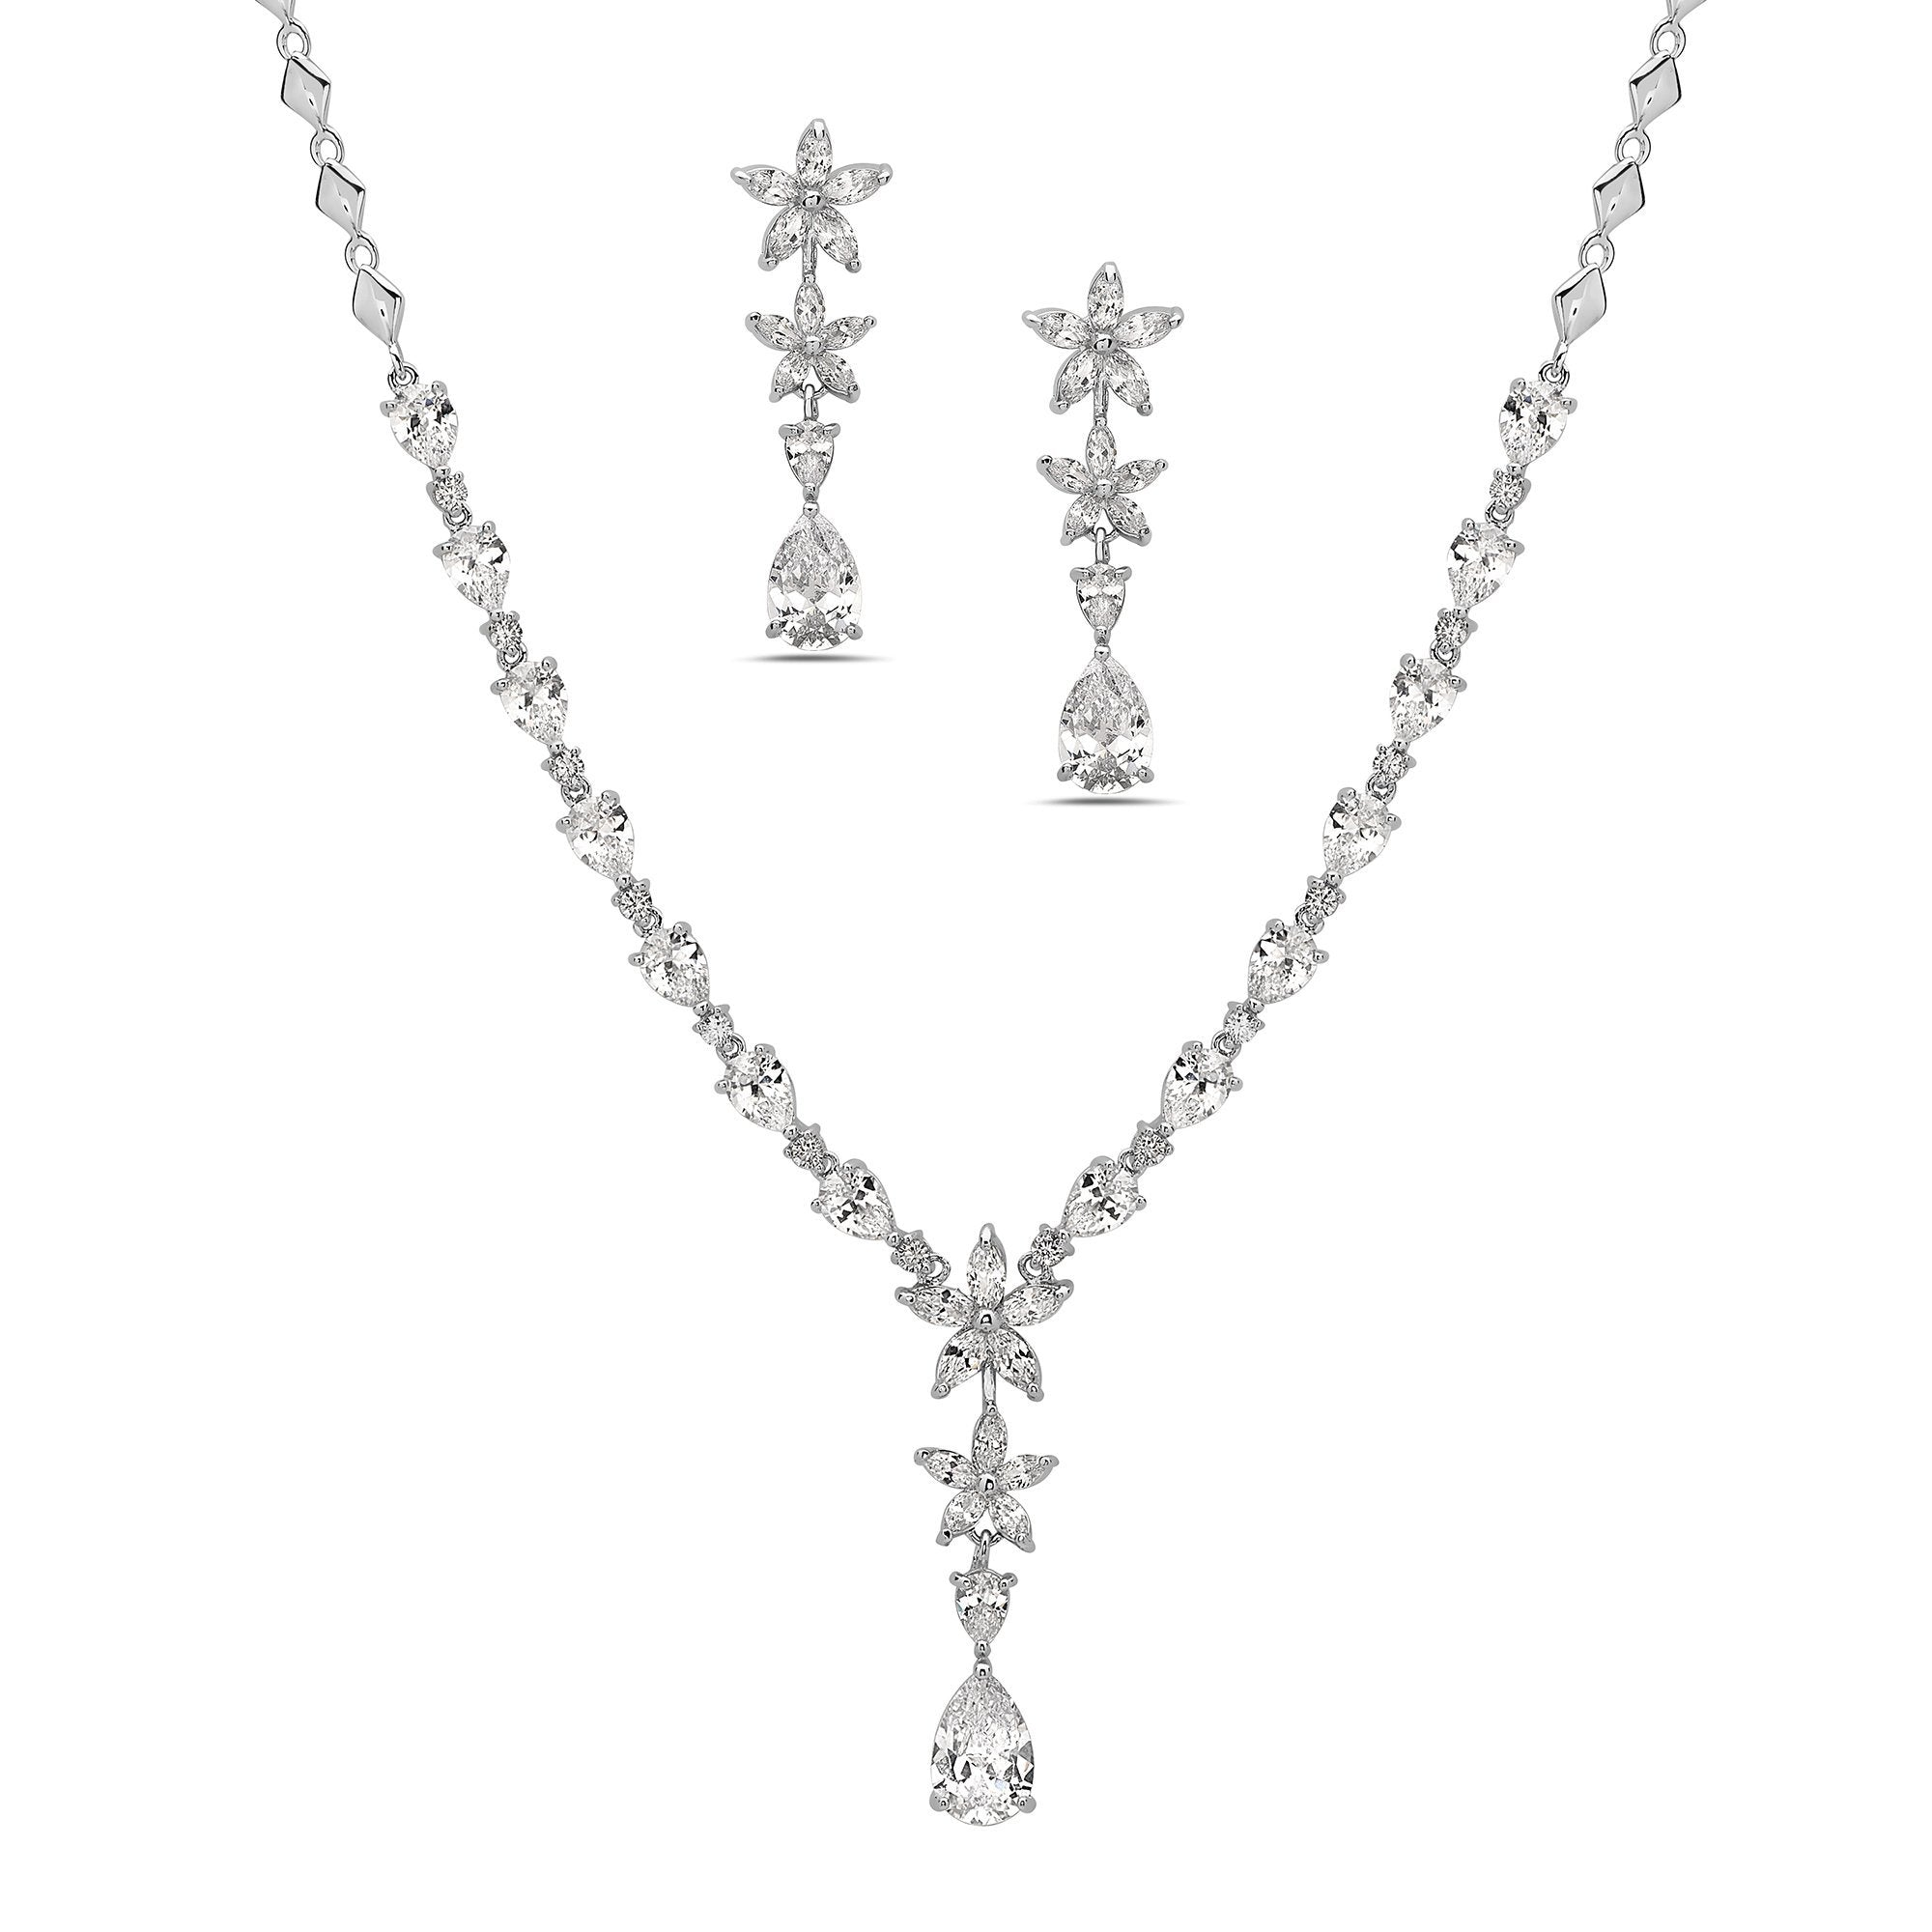 RHODIUM NECKLACE AND EARRING SET